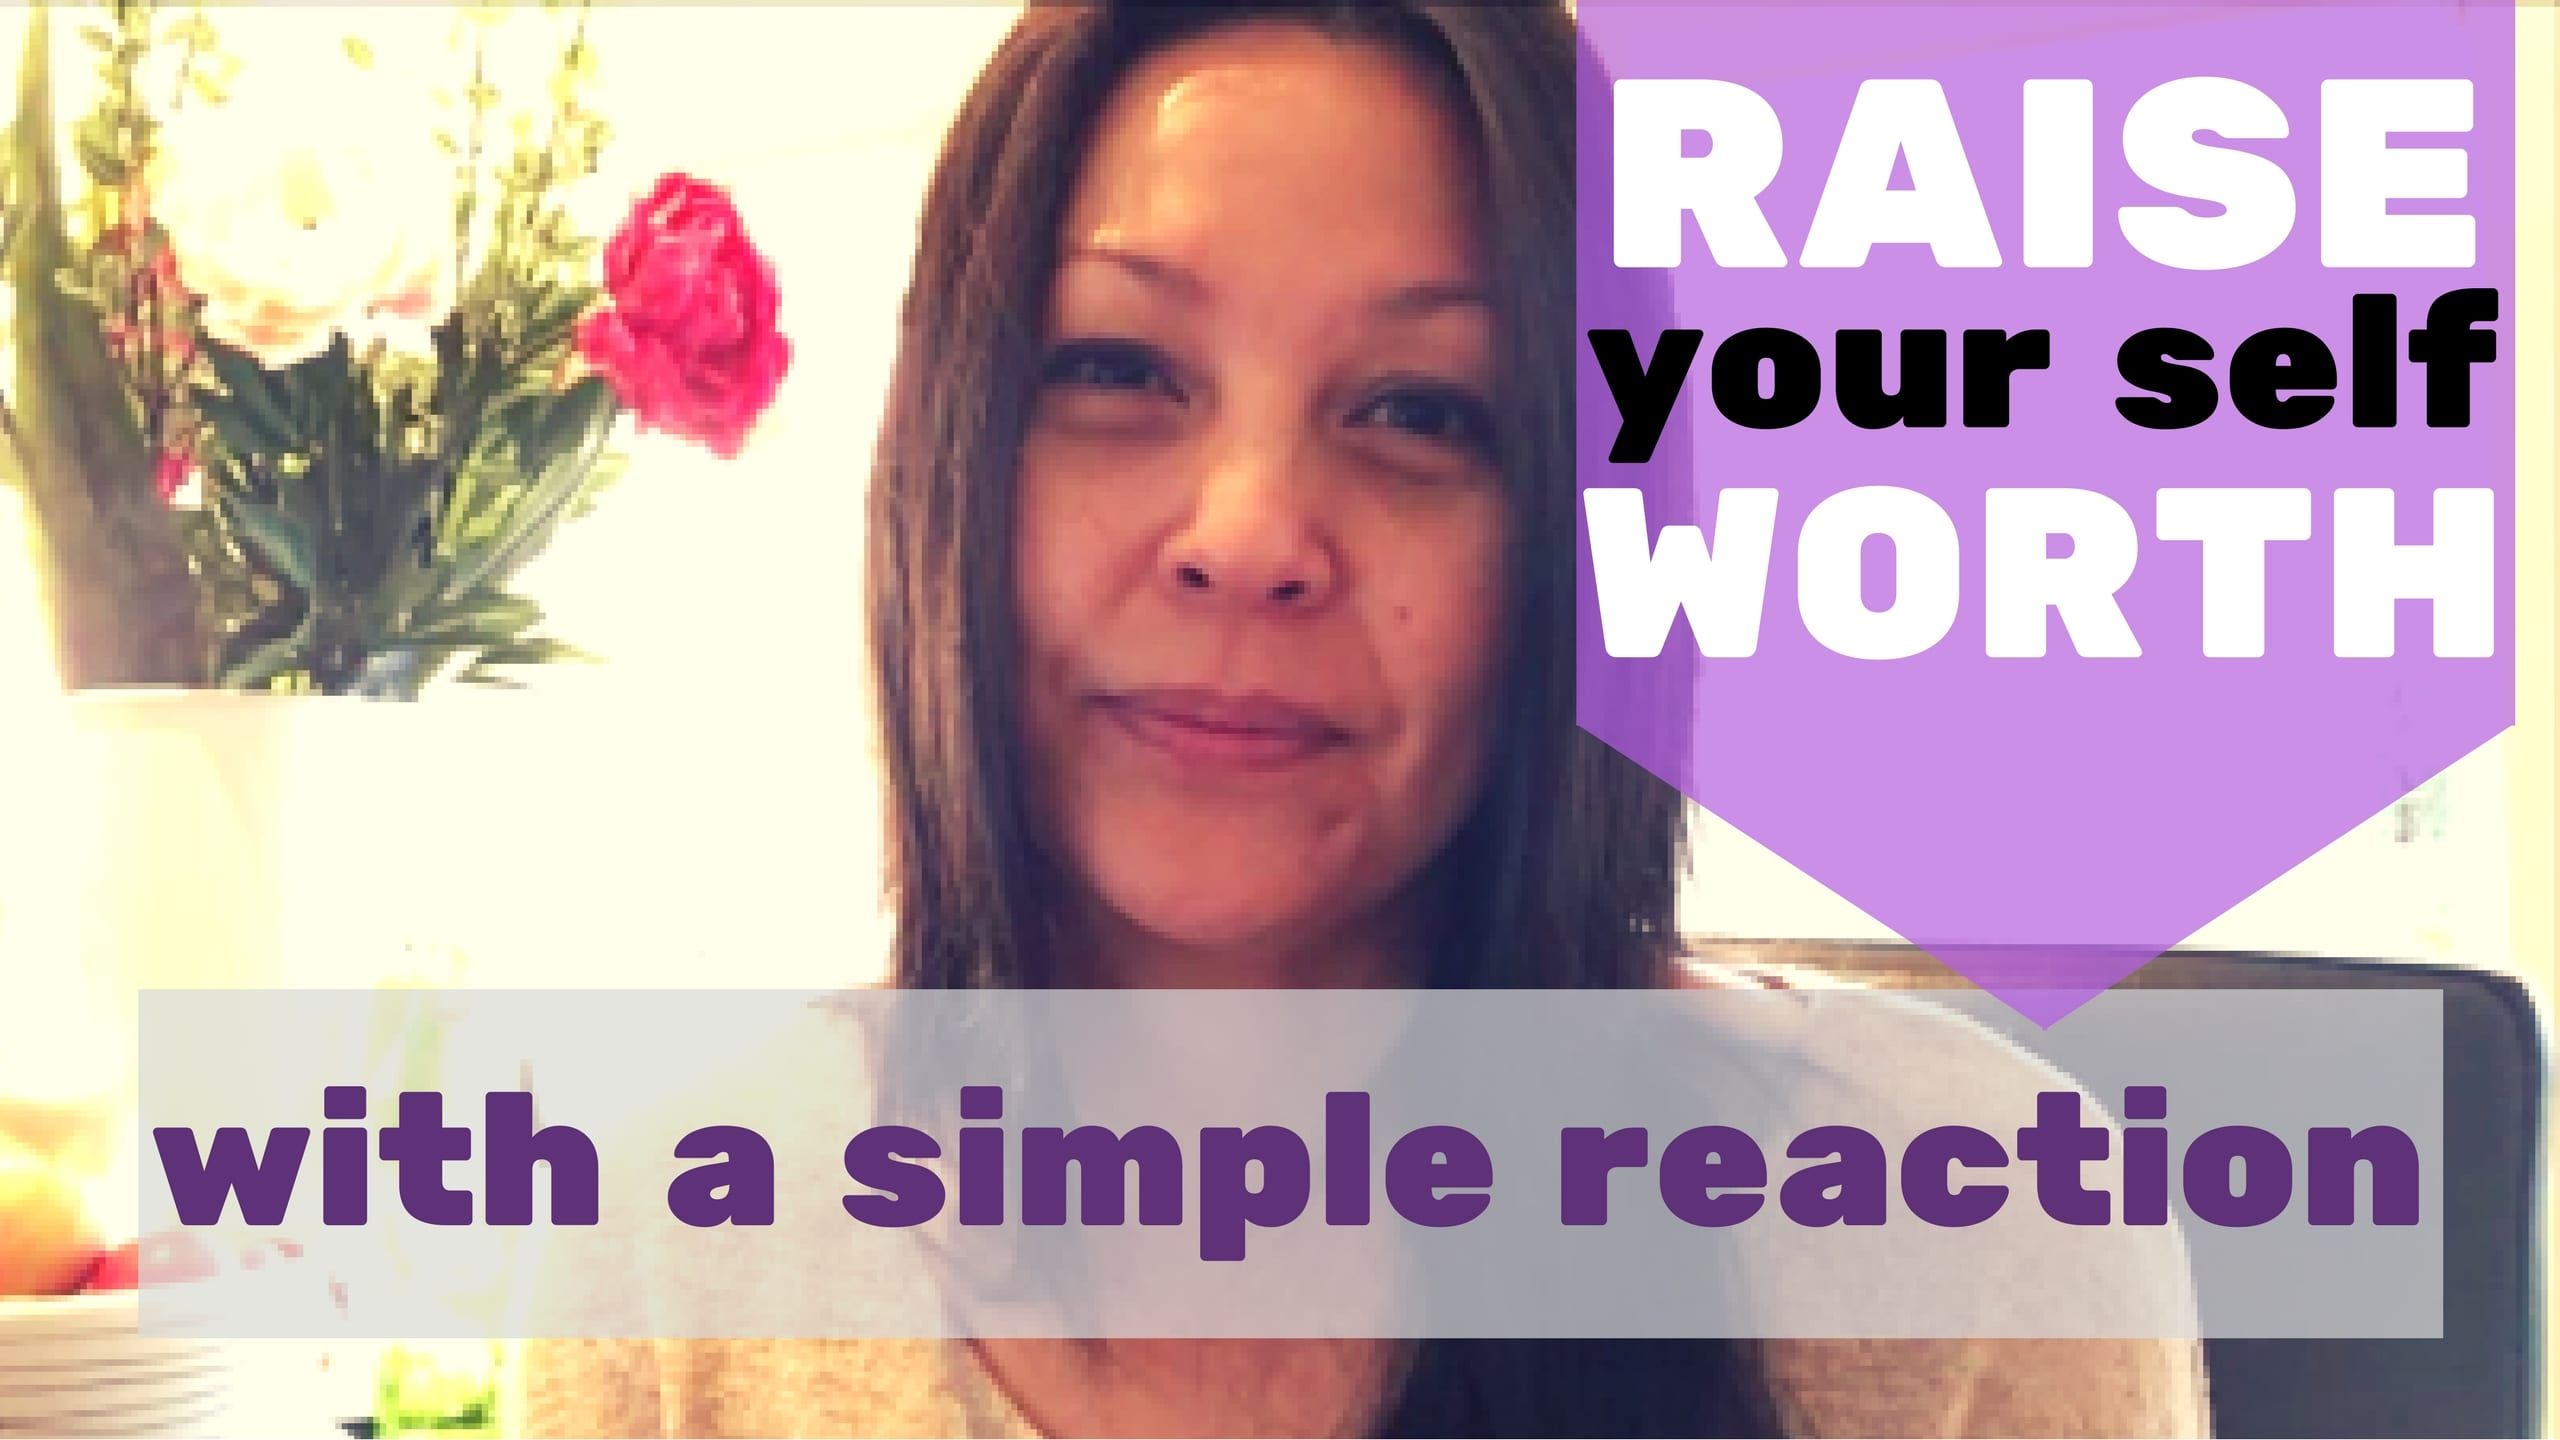 Raise your self worth with a simple (re)action.